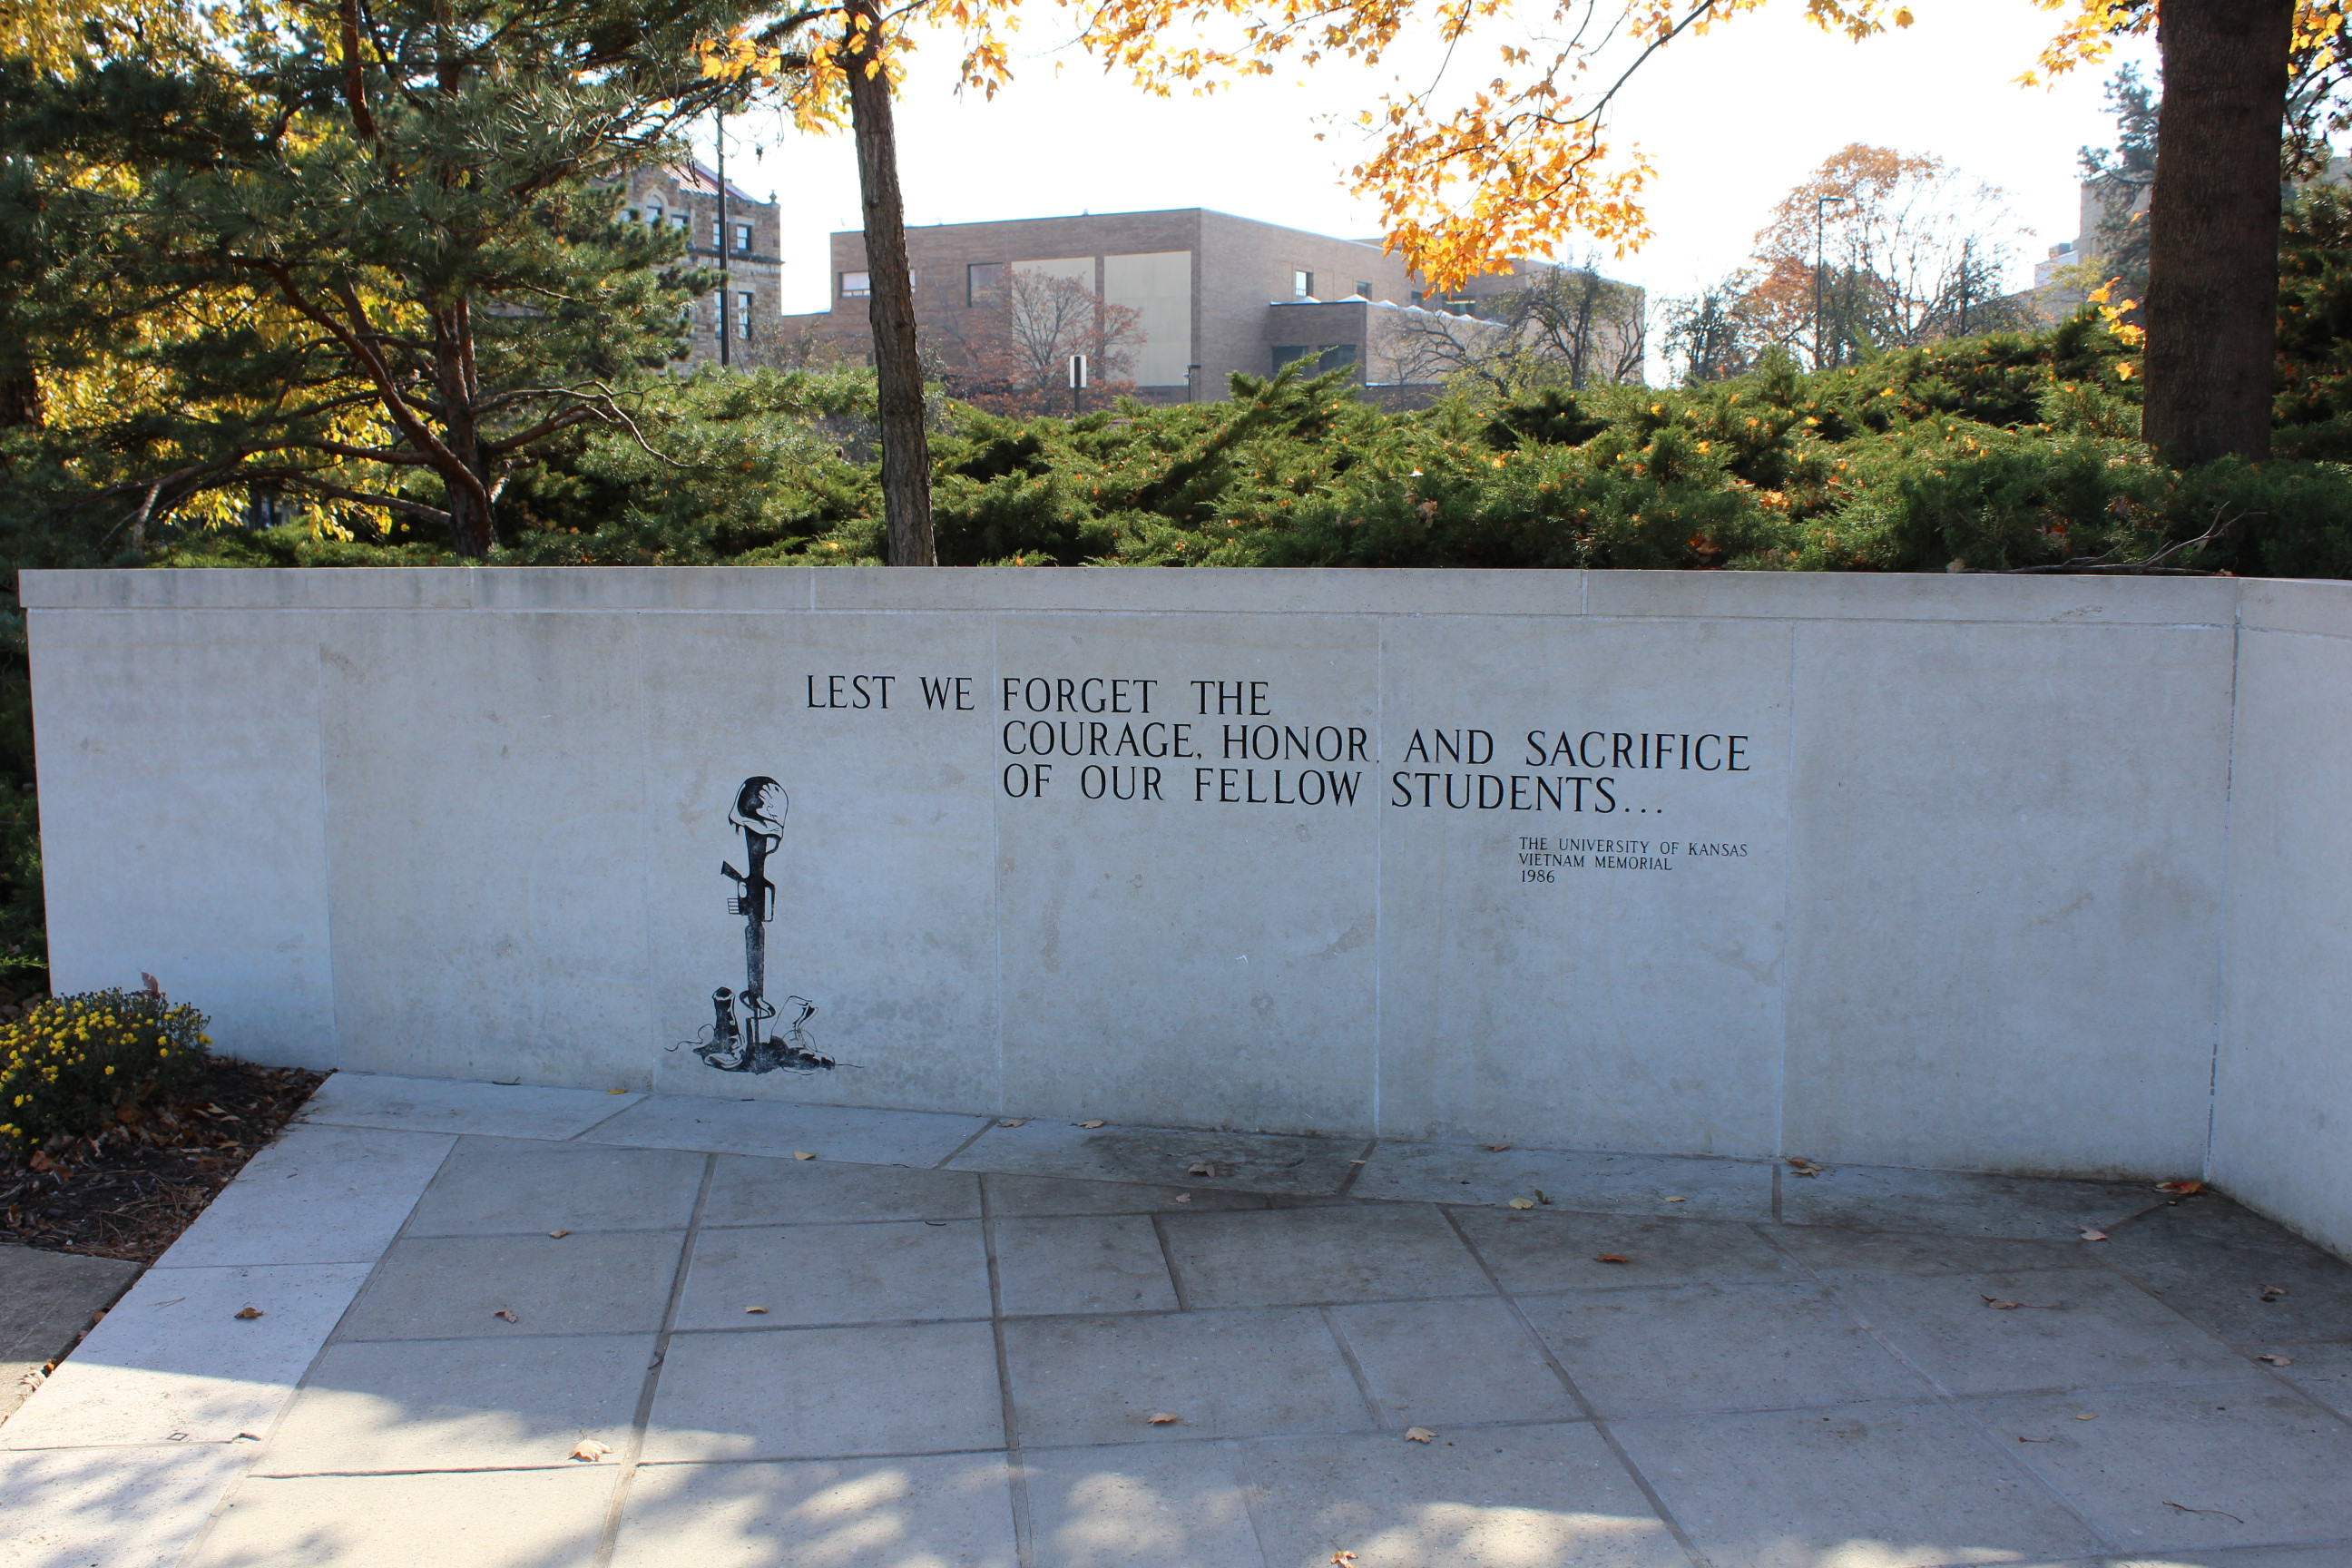 Vietnam War memorial at KU (Photo by J. Schafer)